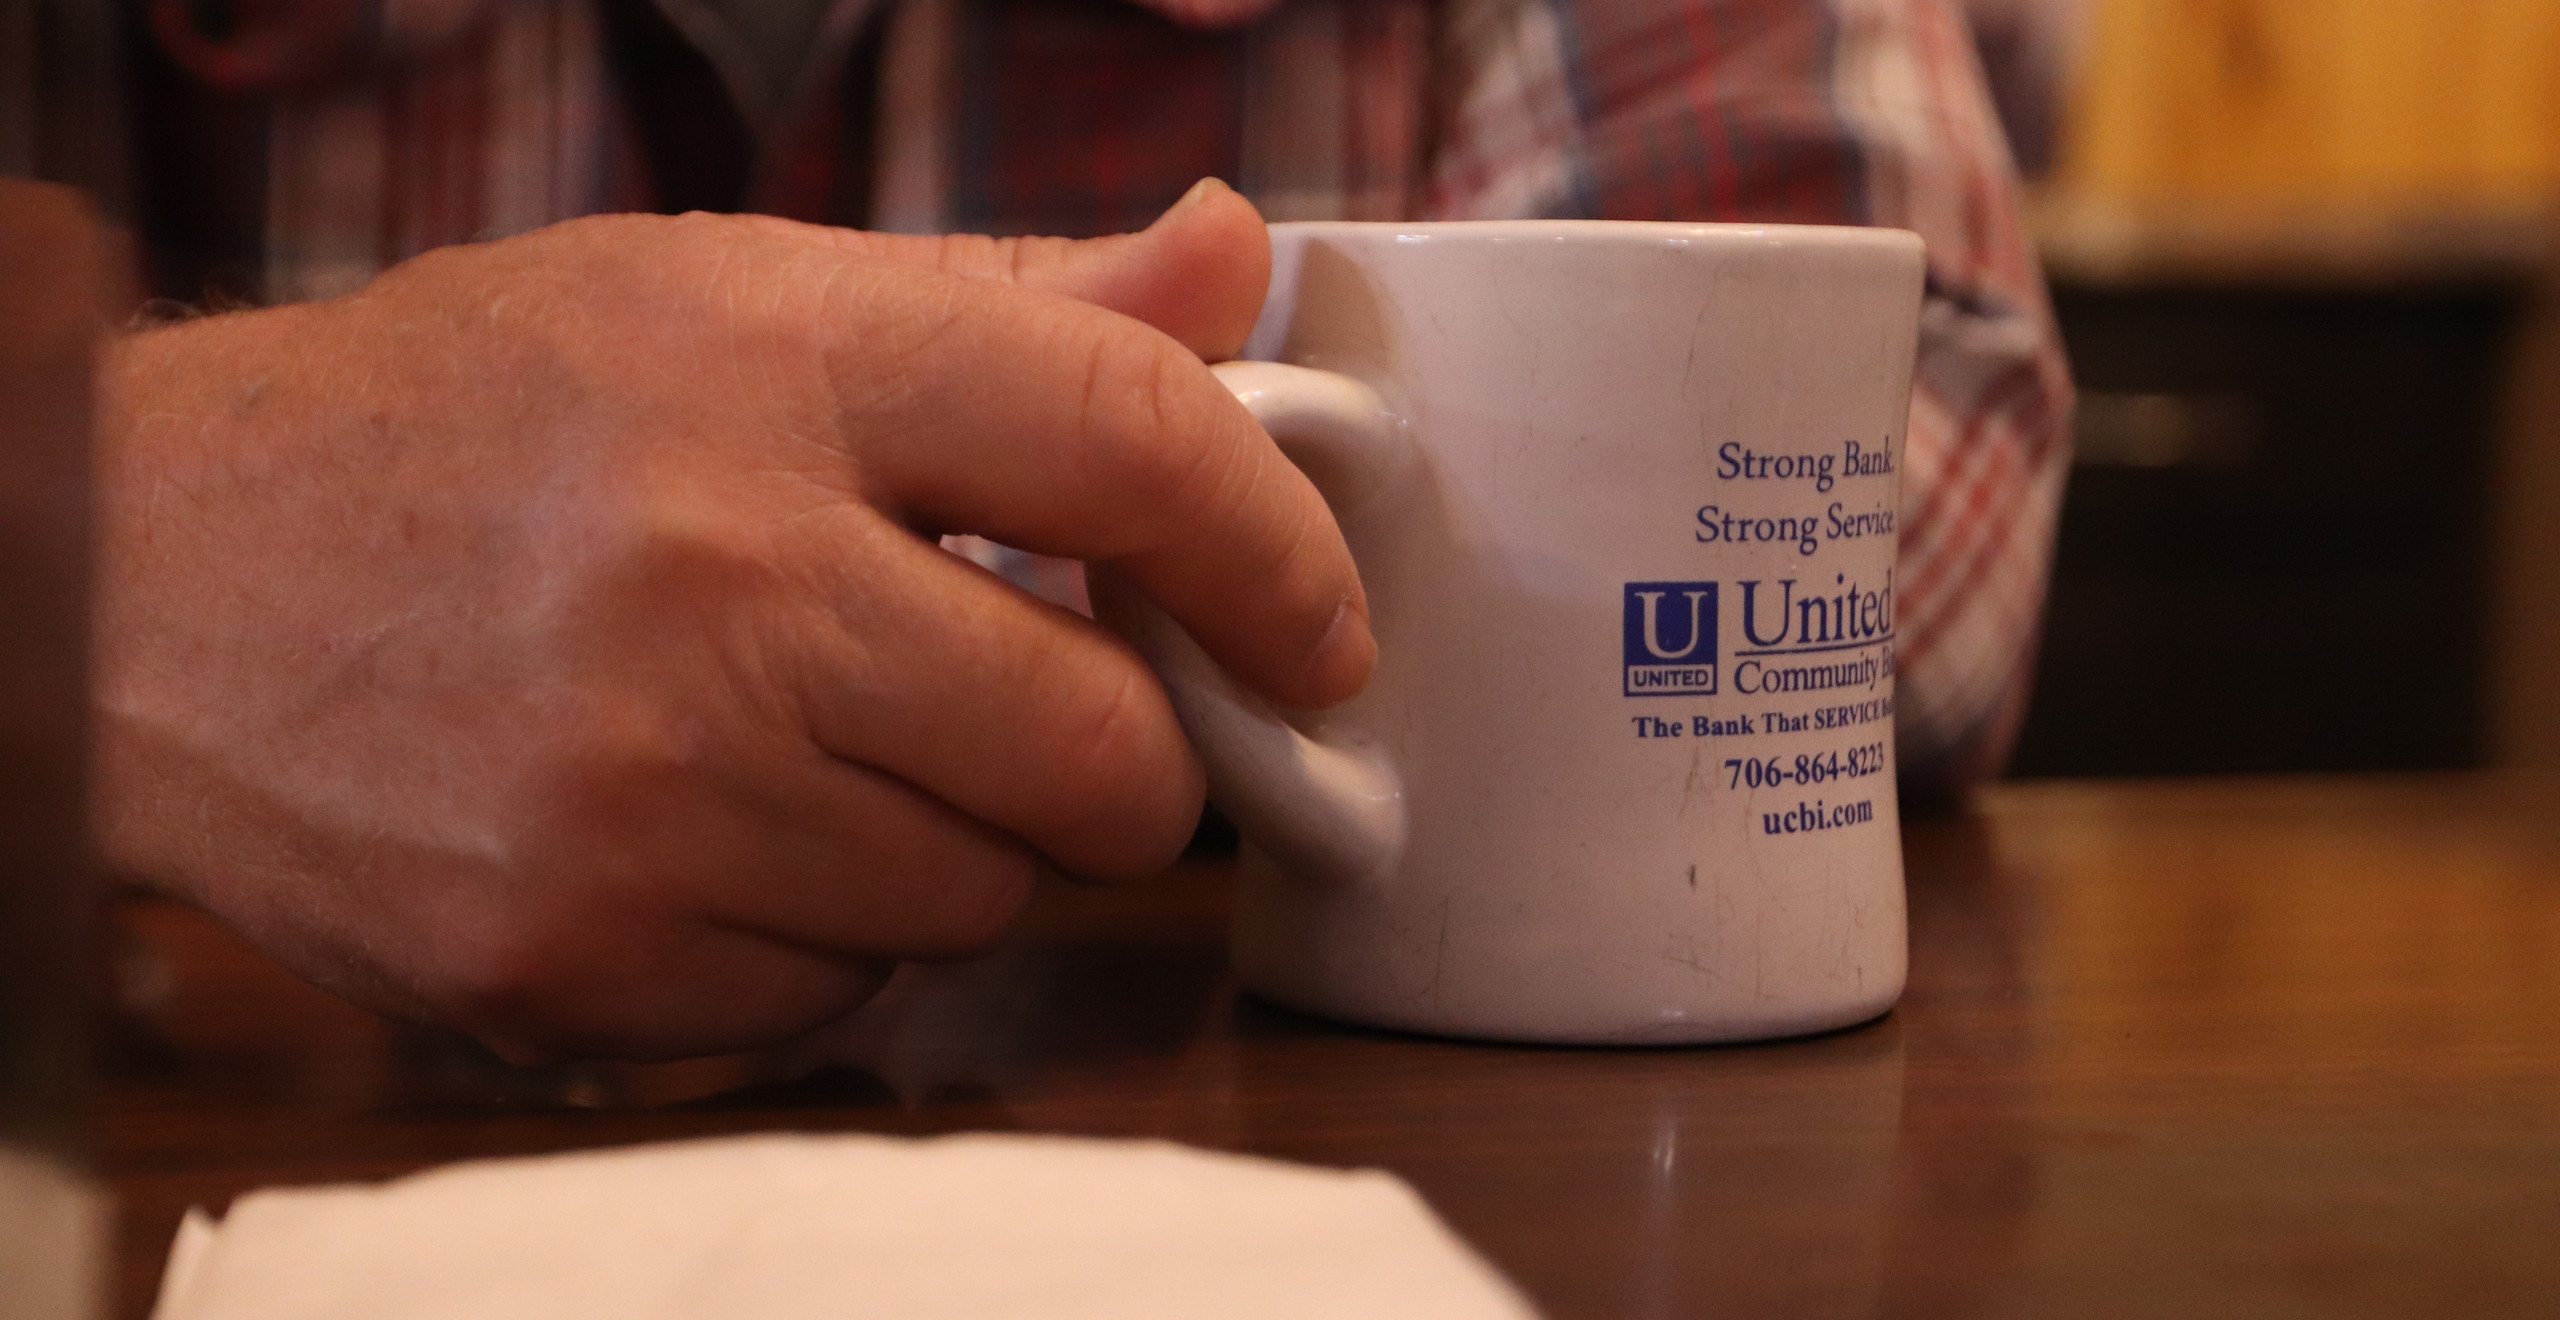 Tommy Tanner, 67, holds his coffee cup on Saturday, March 30, 2019 in Dahlonega, Georgia. Tanner drinks several cups of coffee each morning just like every other member at the table. (Photo/Tristen T. Webb)